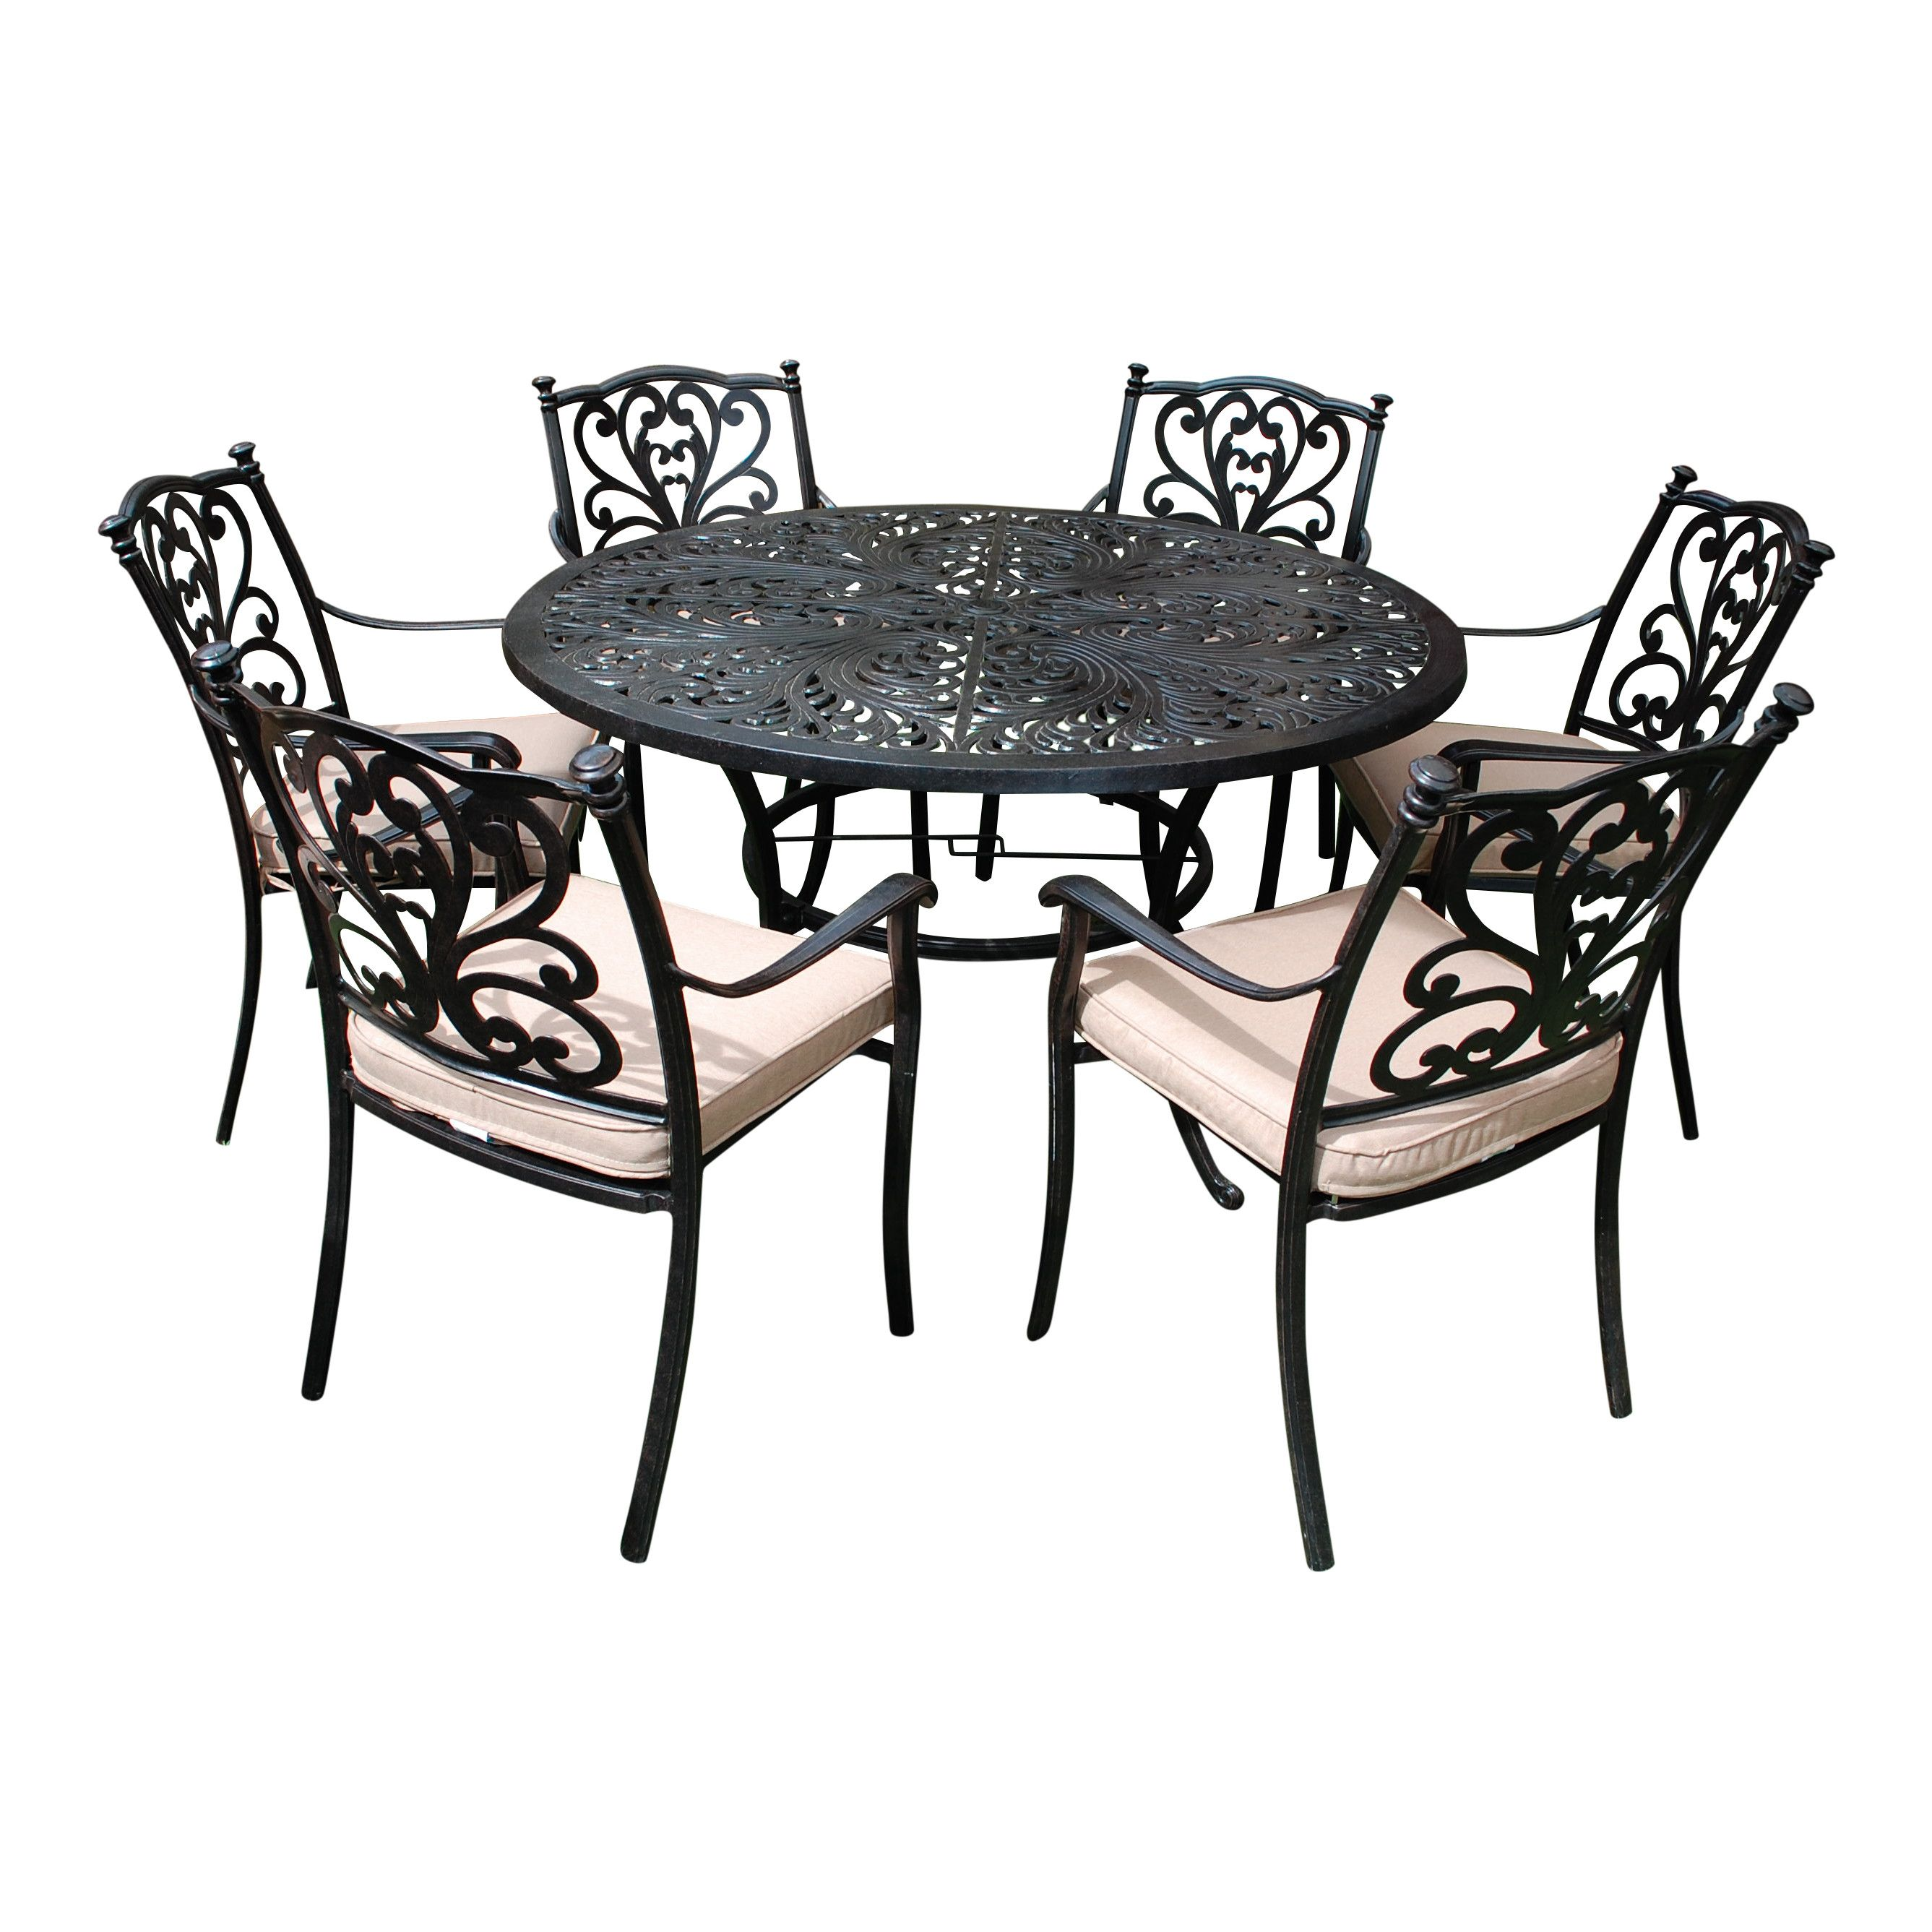 Buy LG Outdoor Devon 6 Seater Round Dining Table Chairs Set Bronze From Our Garden Furniture Sets Range At John Lewis